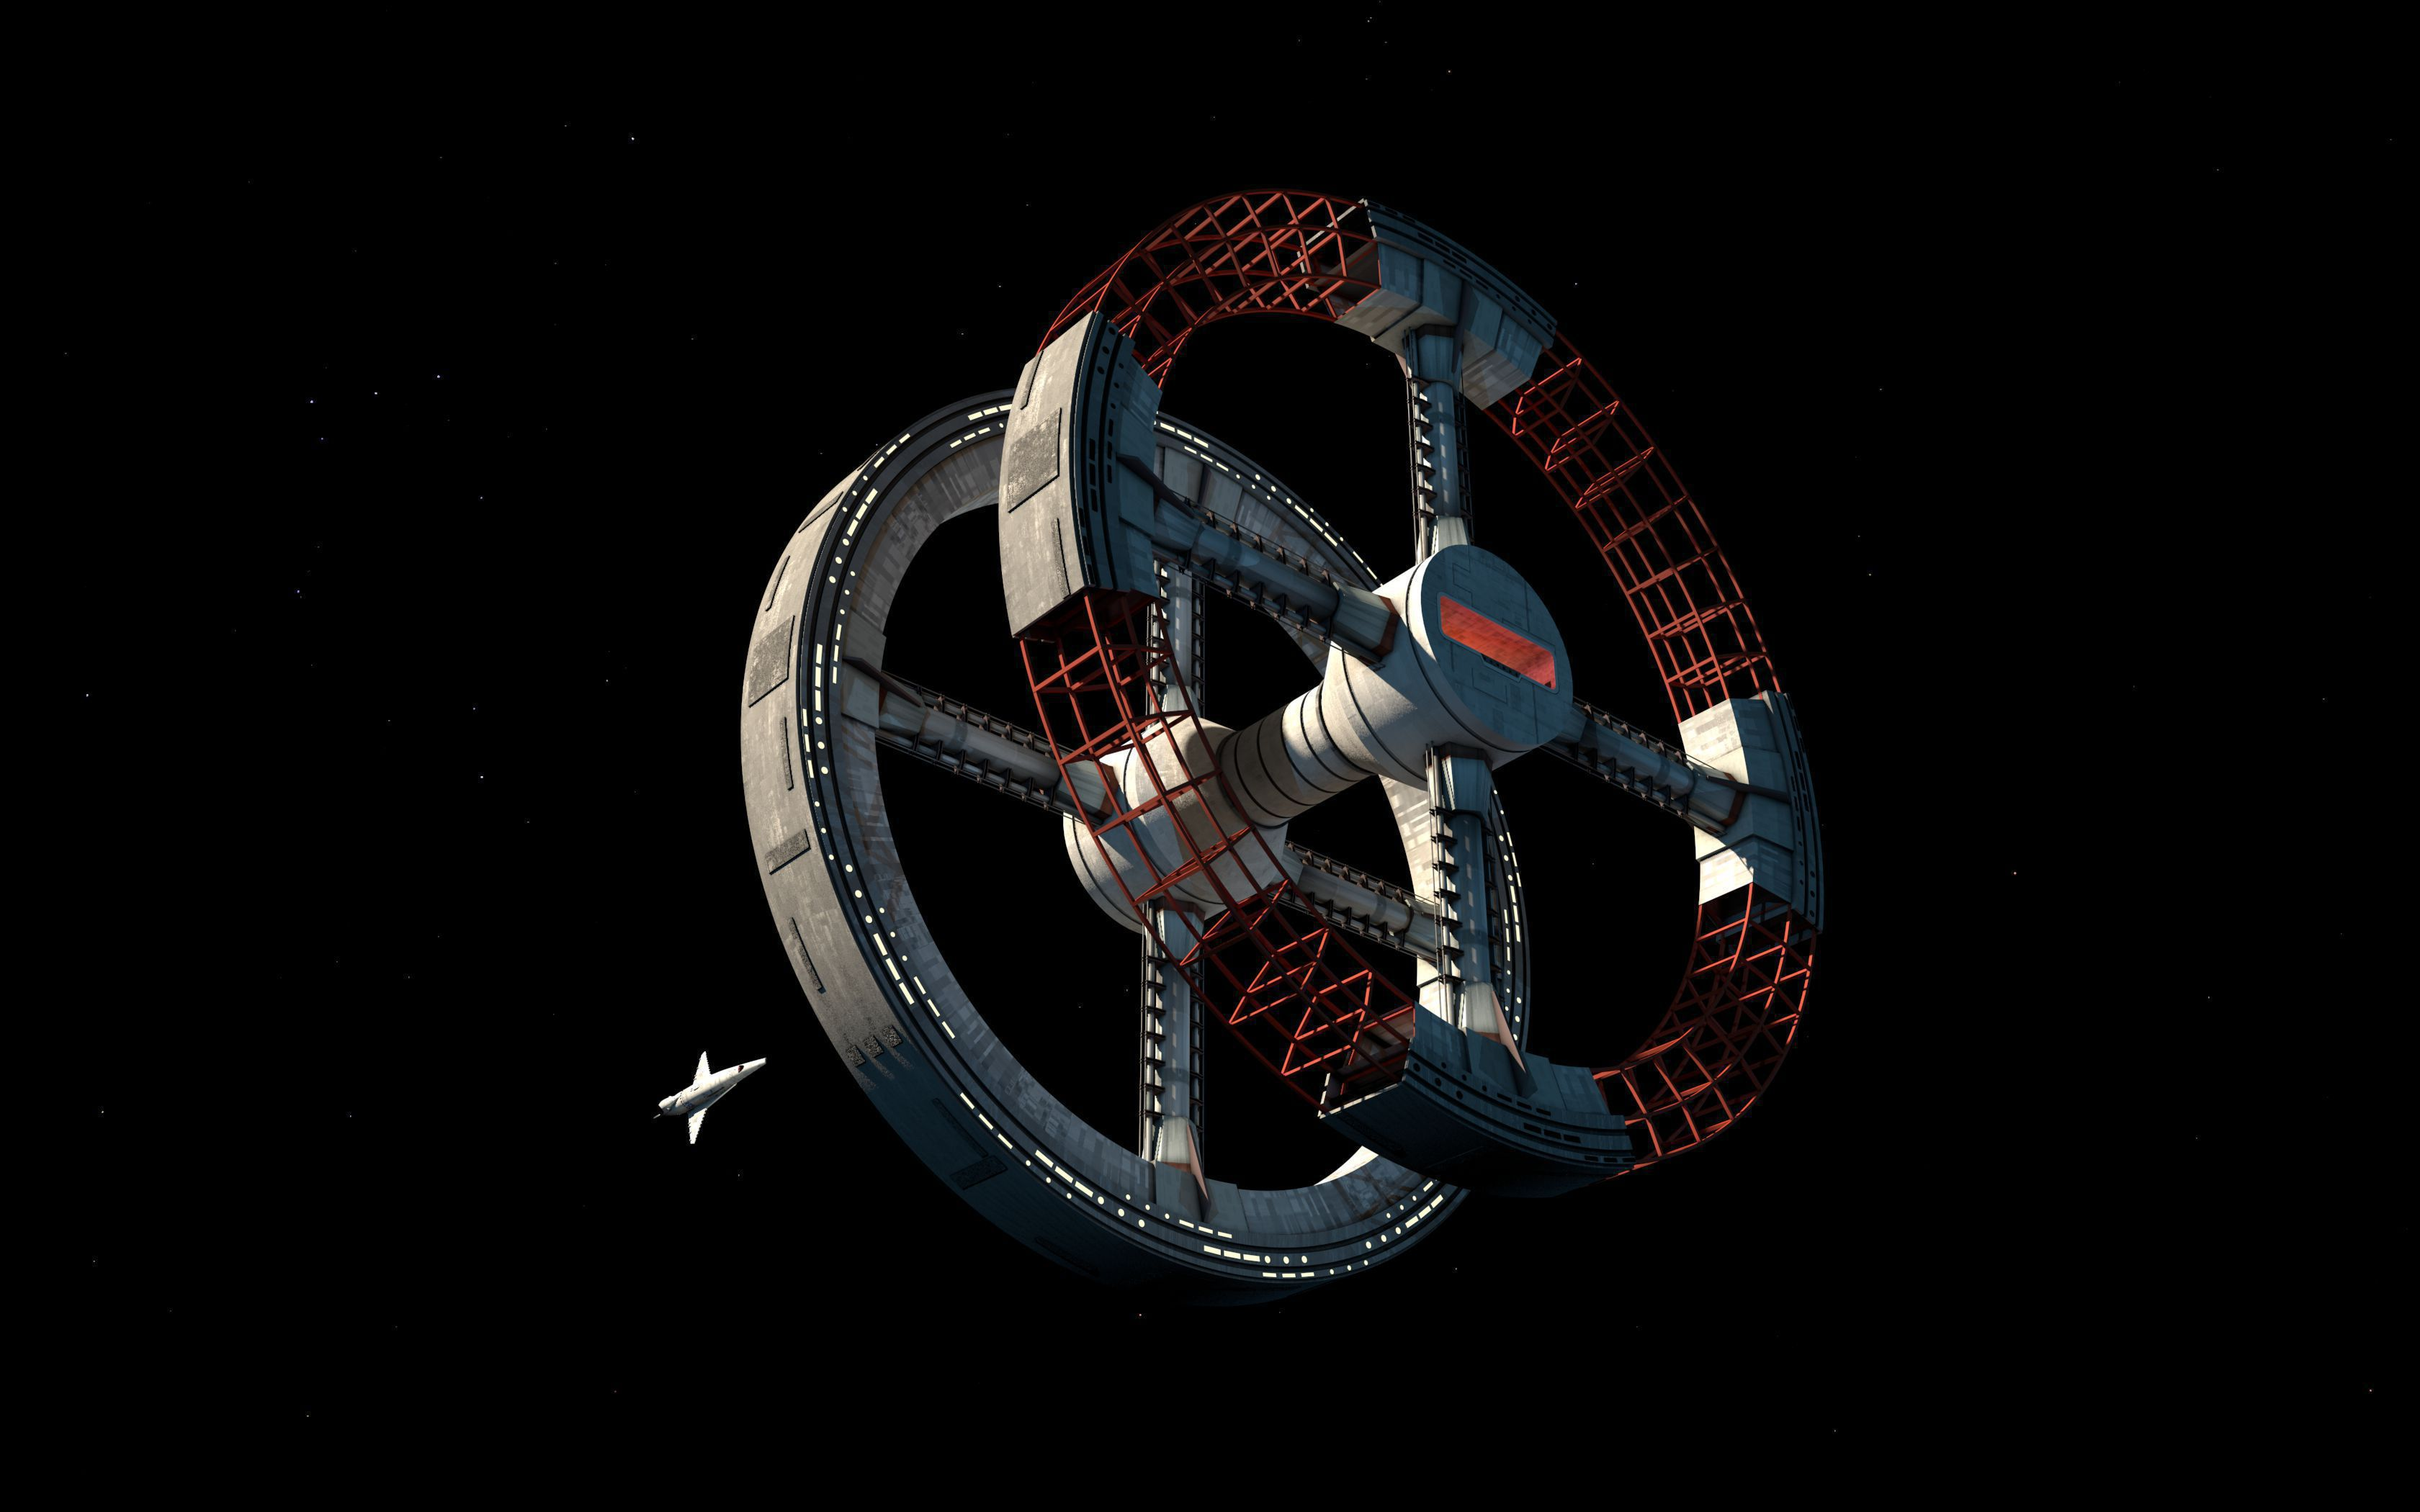 2001 a space odyssey wallpapers images photos pictures - Space odyssey wallpaper ...